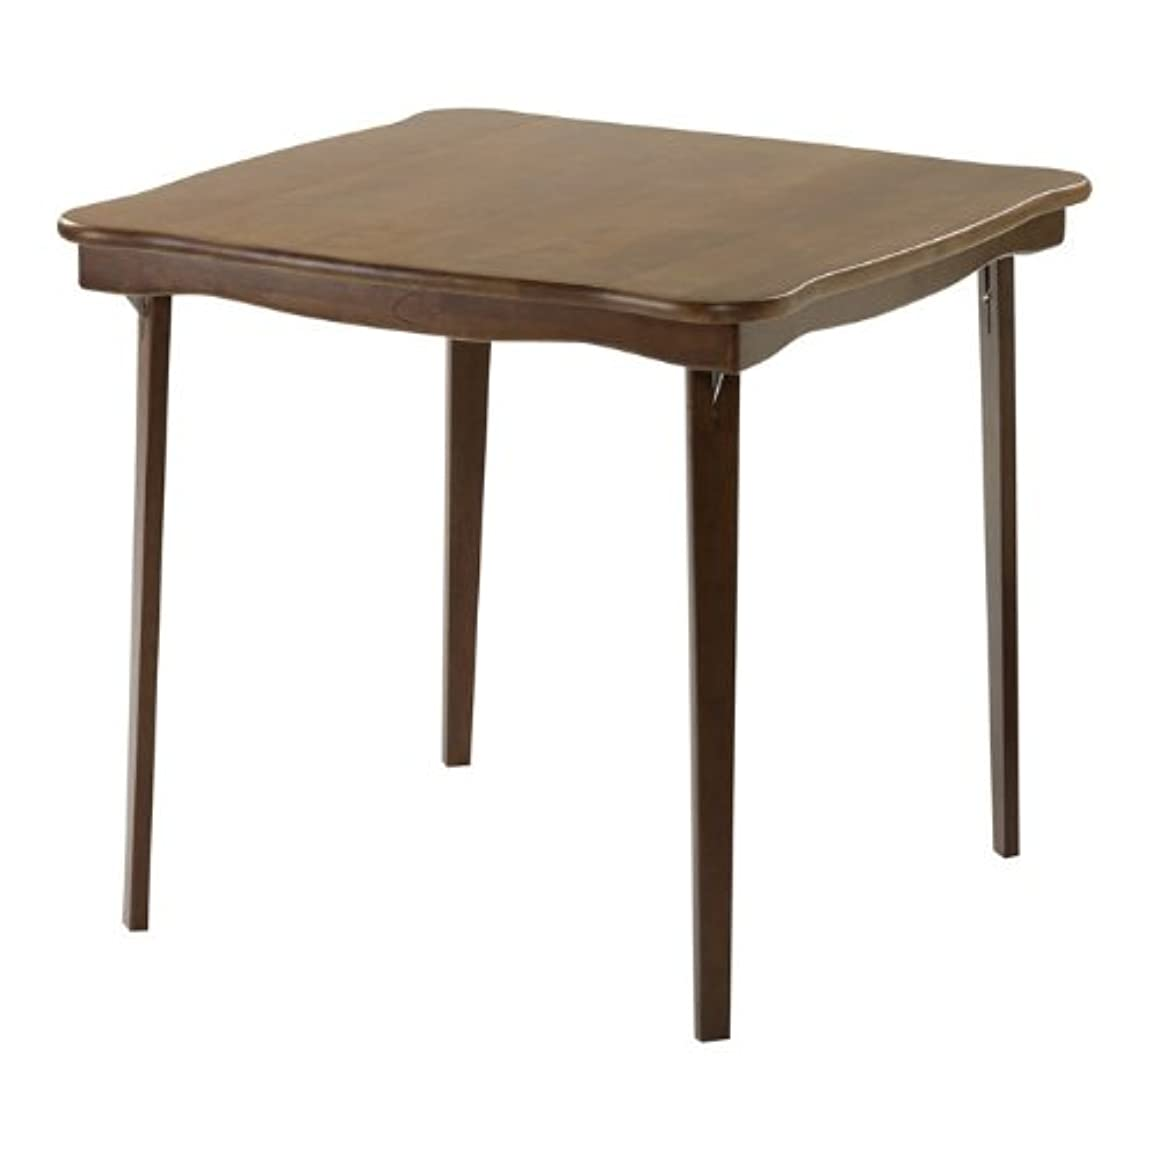 Scalloped Edge Wood Folding Card Table in Warm Fruitwood Finish